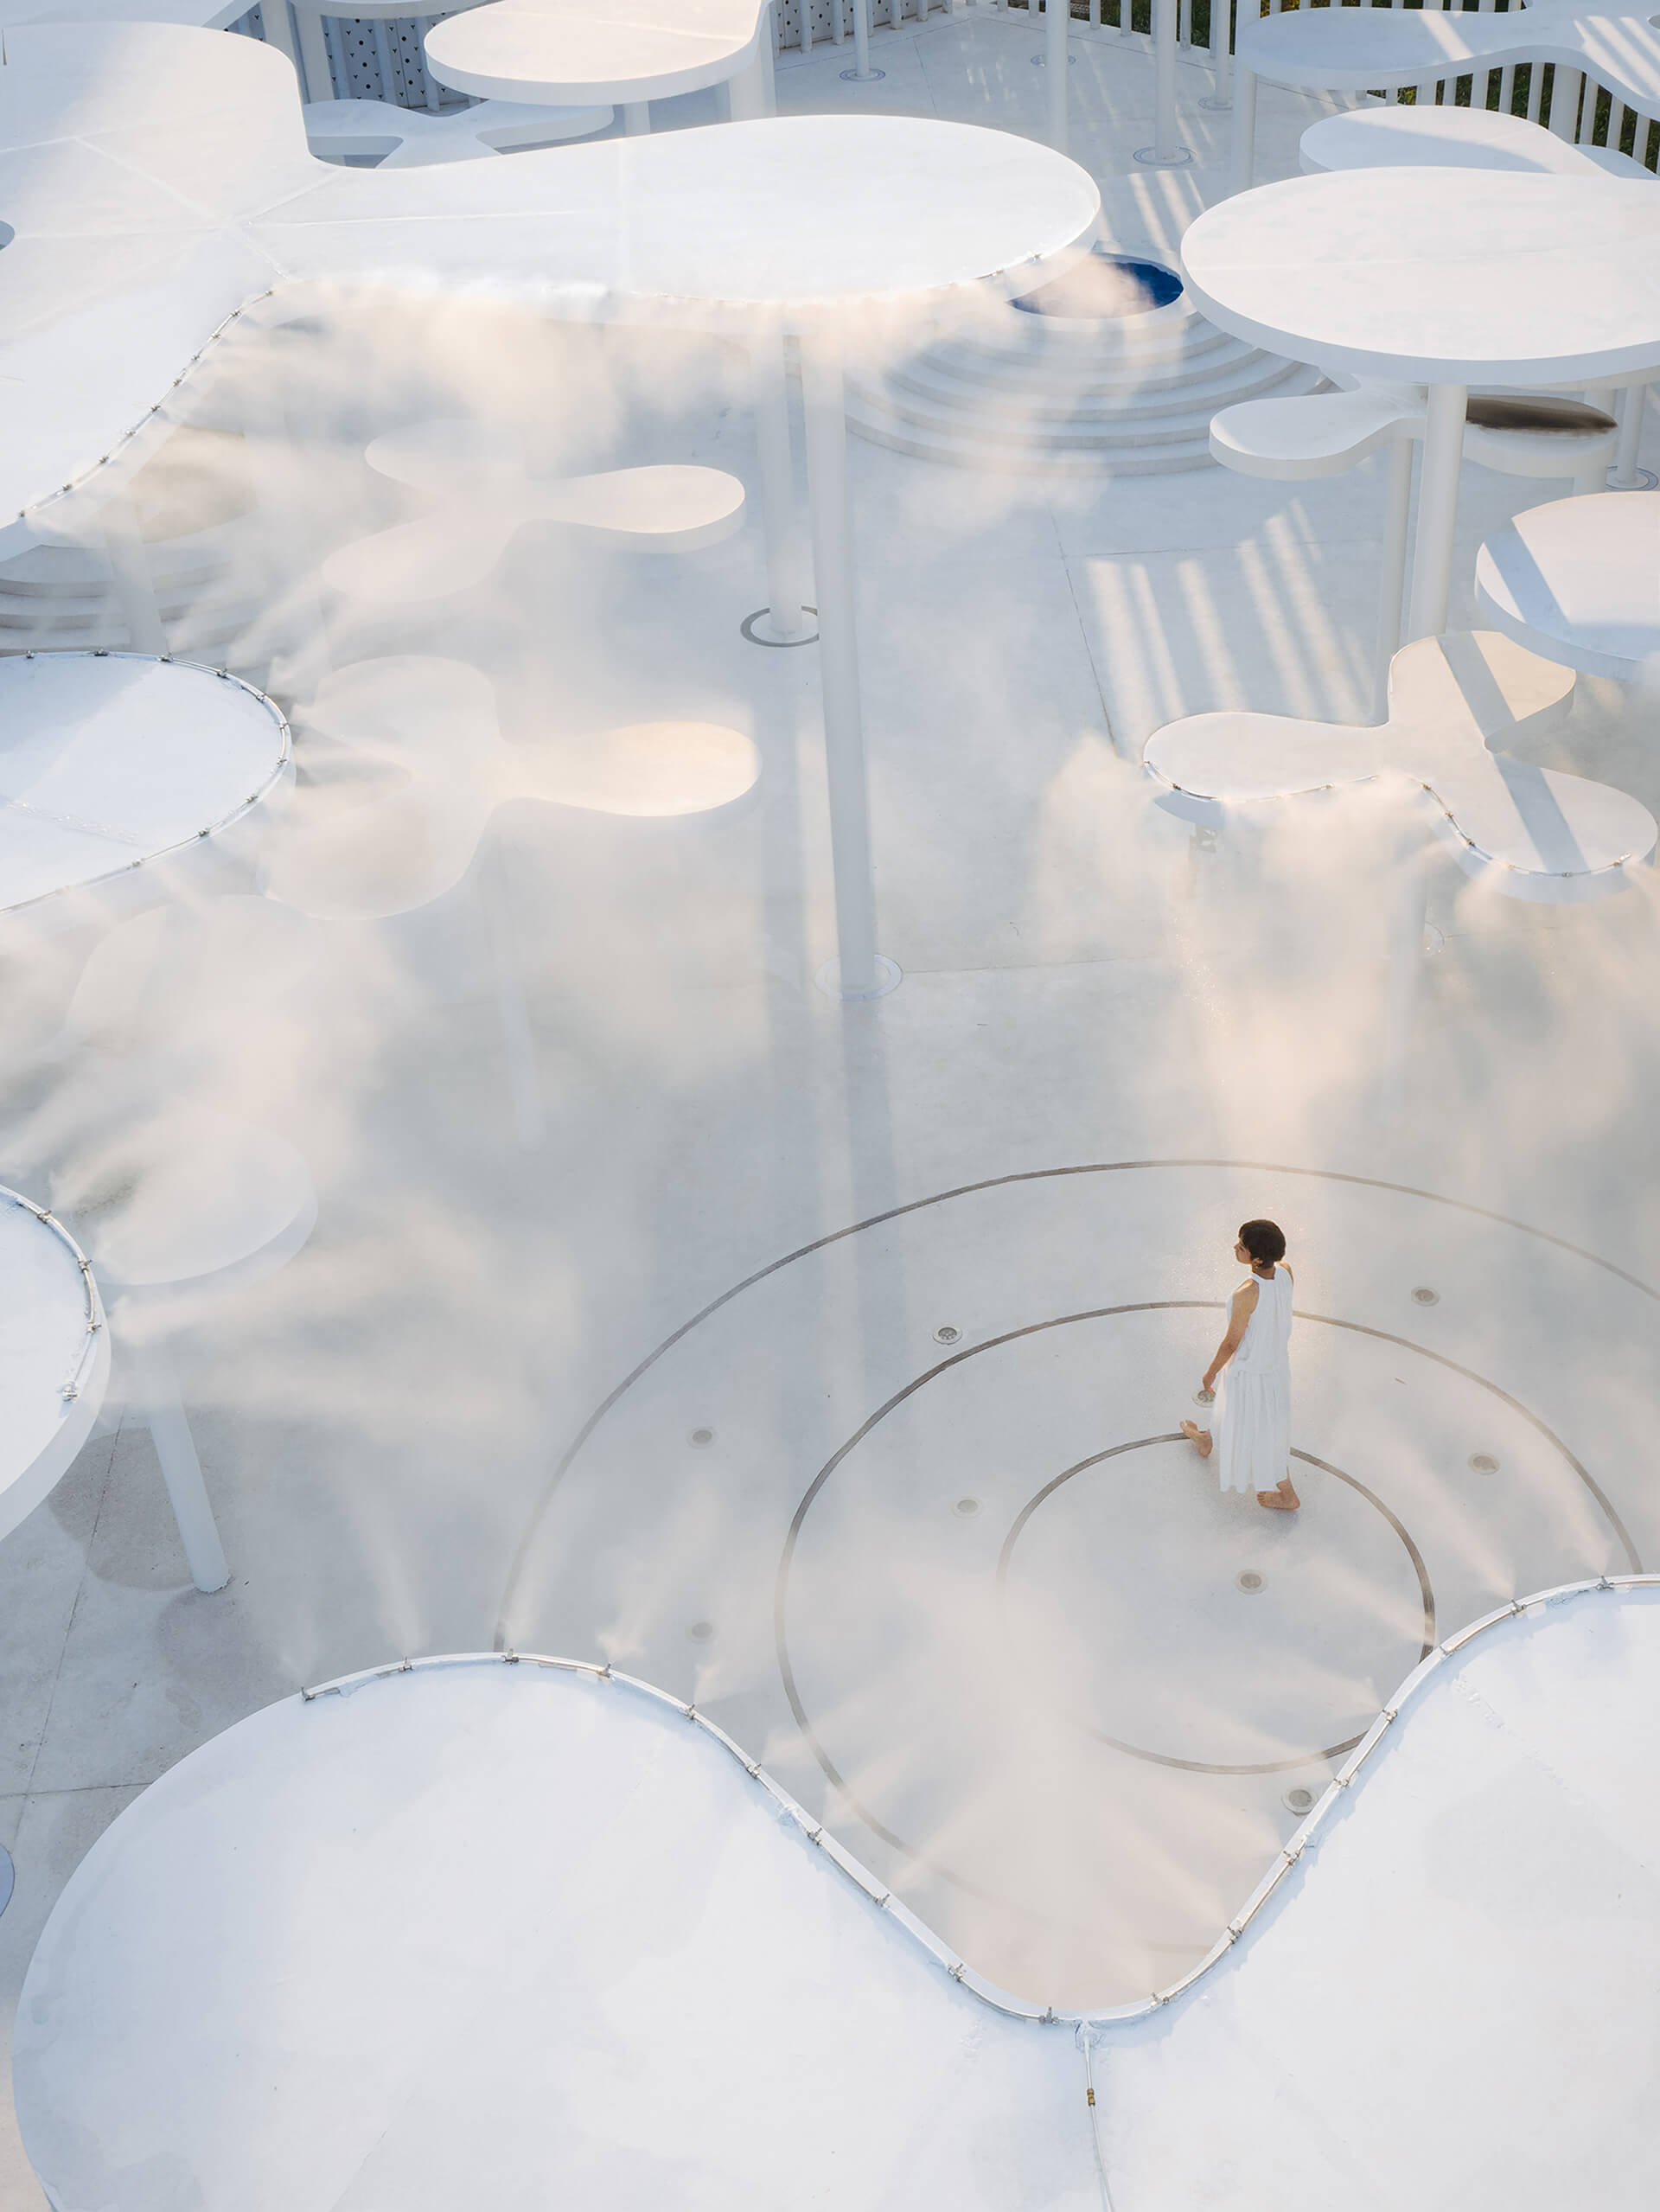 Facilities to create weather have been incorporated in the design | White Upland | Wutopia Lab | STIRworld